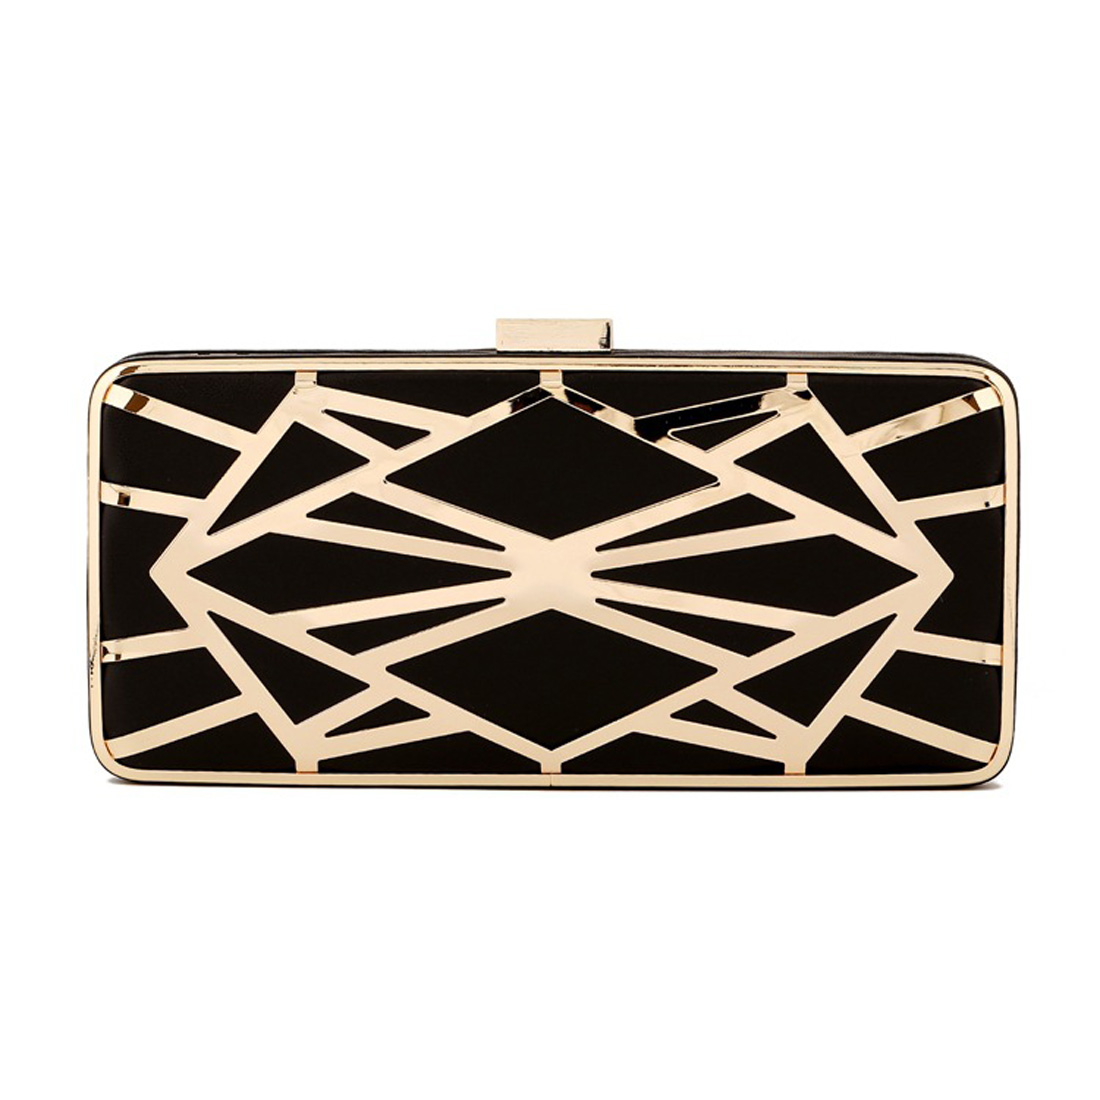 acb42a7c32b3 Hot ! Fashion Women hollow out Evening Bag Metal weave Wedding Bridal Party  Purse Day Clutches ladies Chains Handbags -in Top-Handle Bags from Luggage  ...